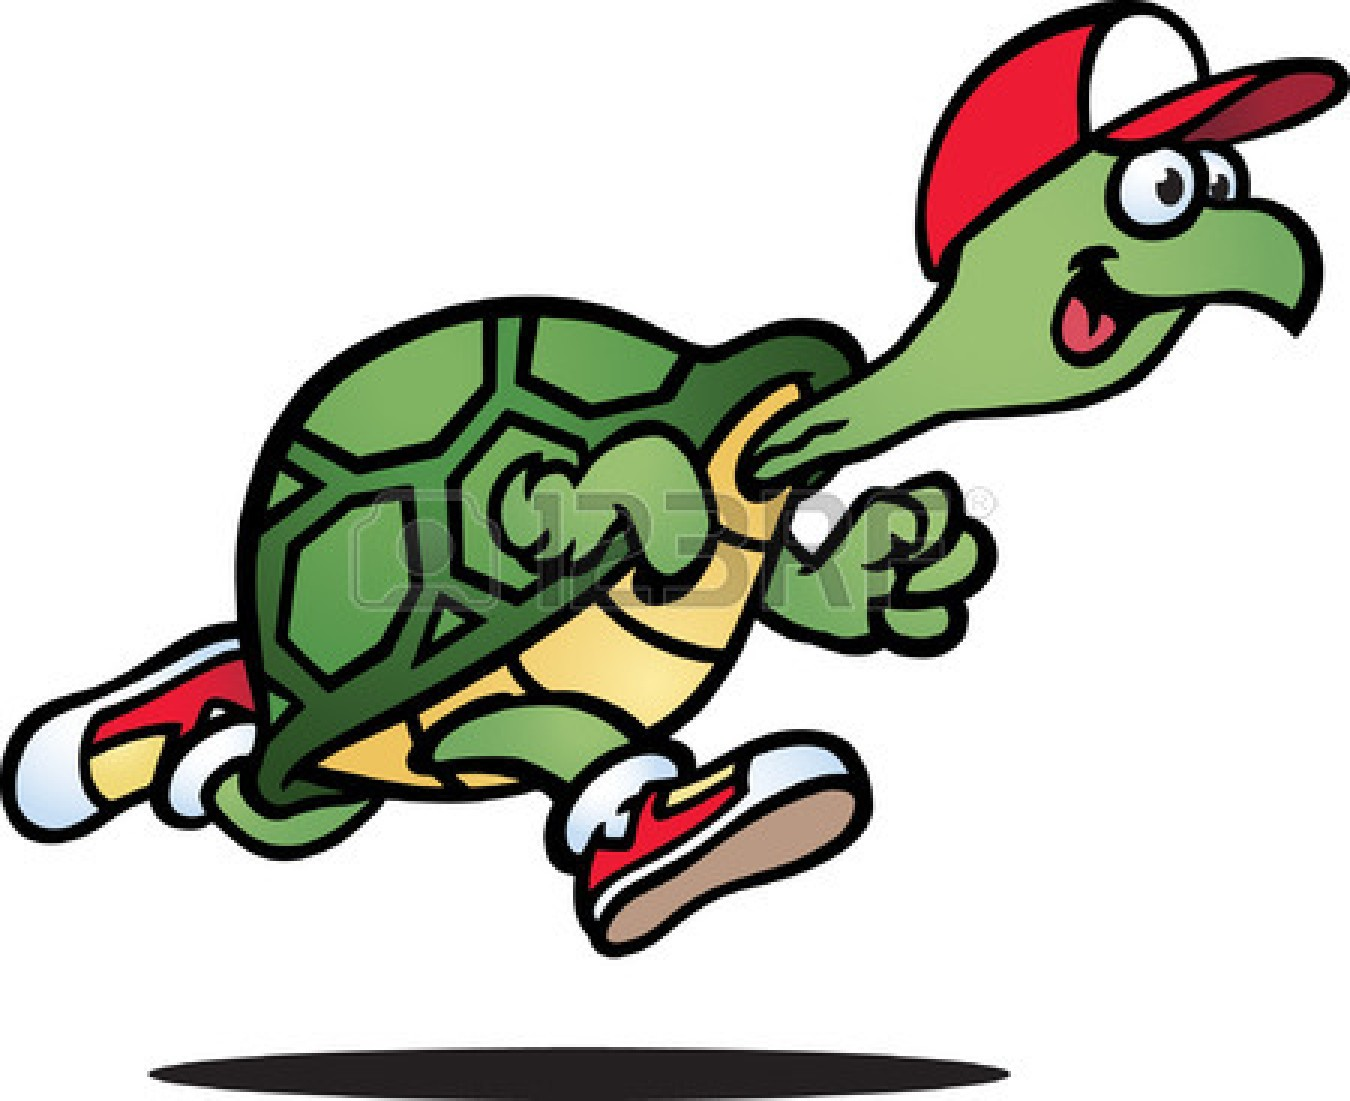 Turtle clipart one Strong Turtle Person Slow Clipart